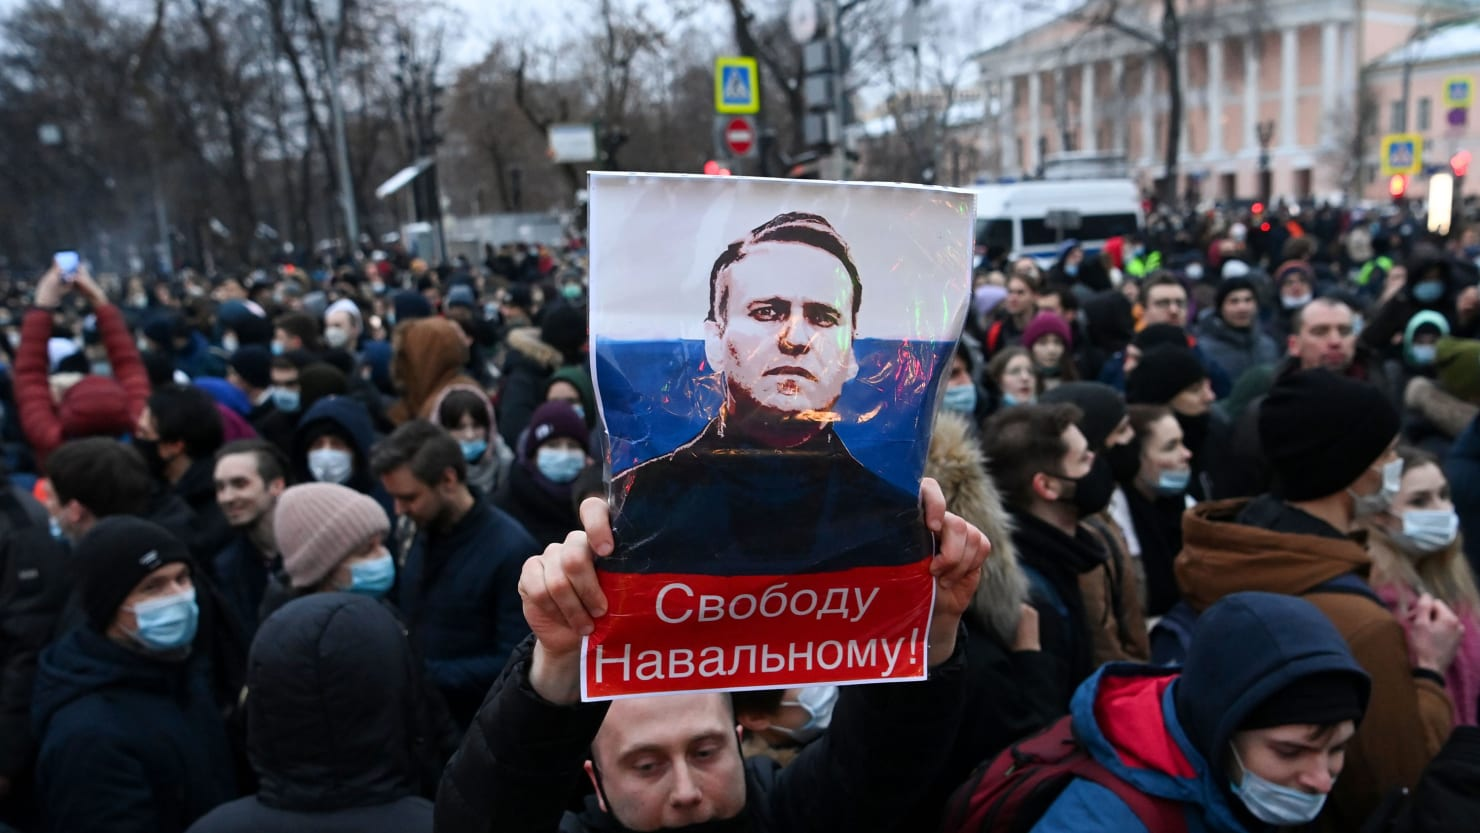 Tens of Thousands Flood Moscow Streets to Protest Nalvany's Arrest